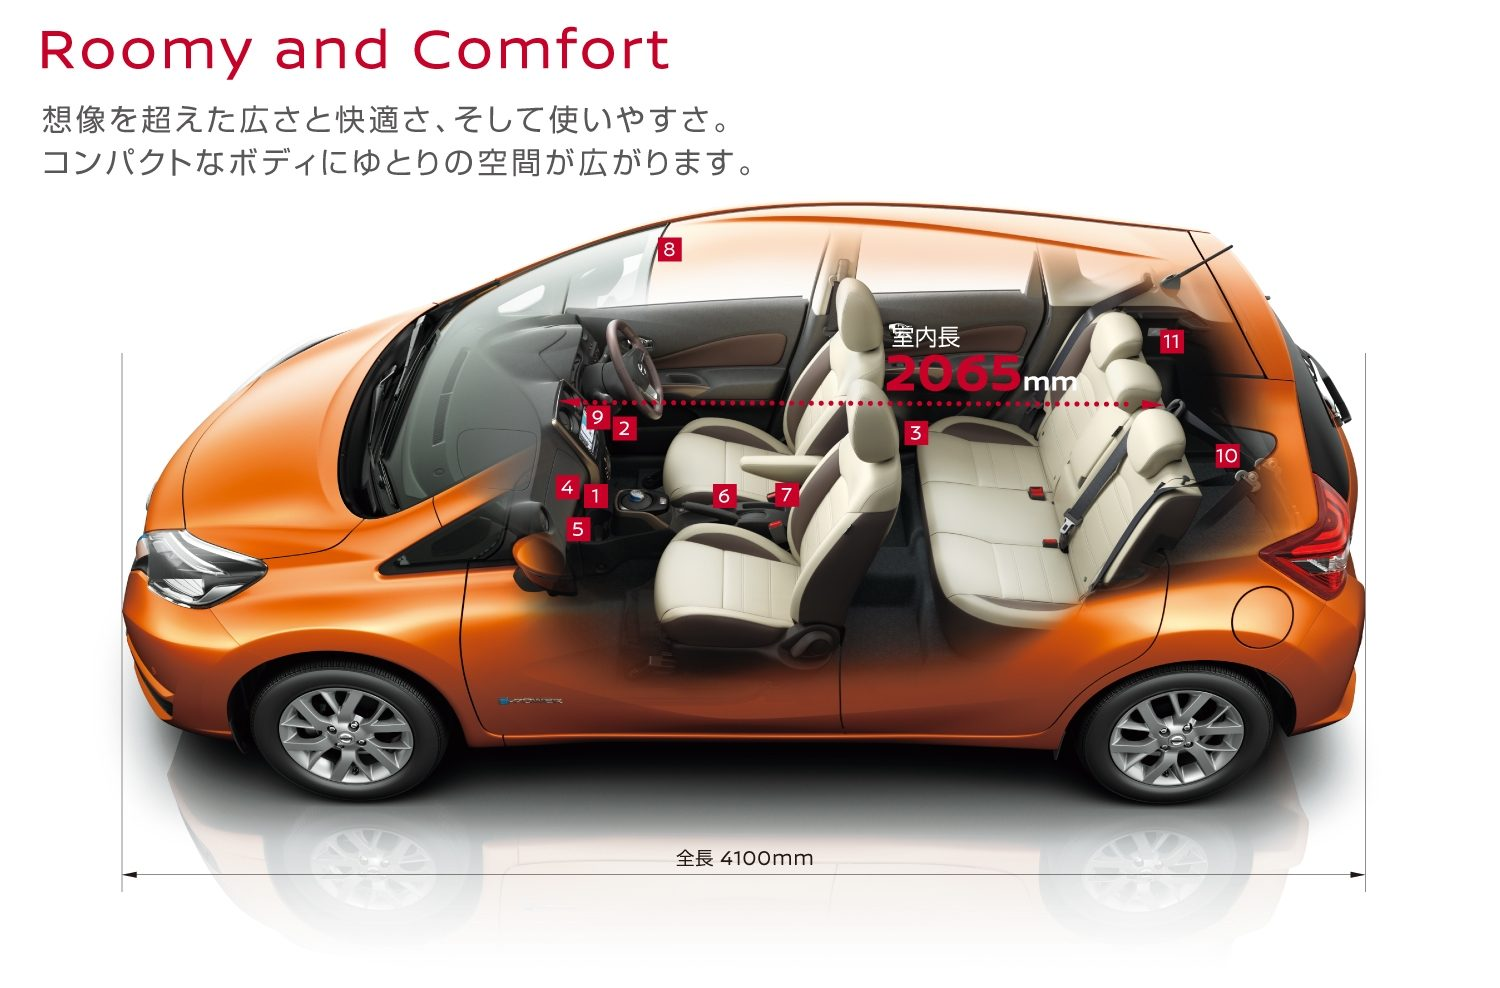 ROOMY AND COMFORT